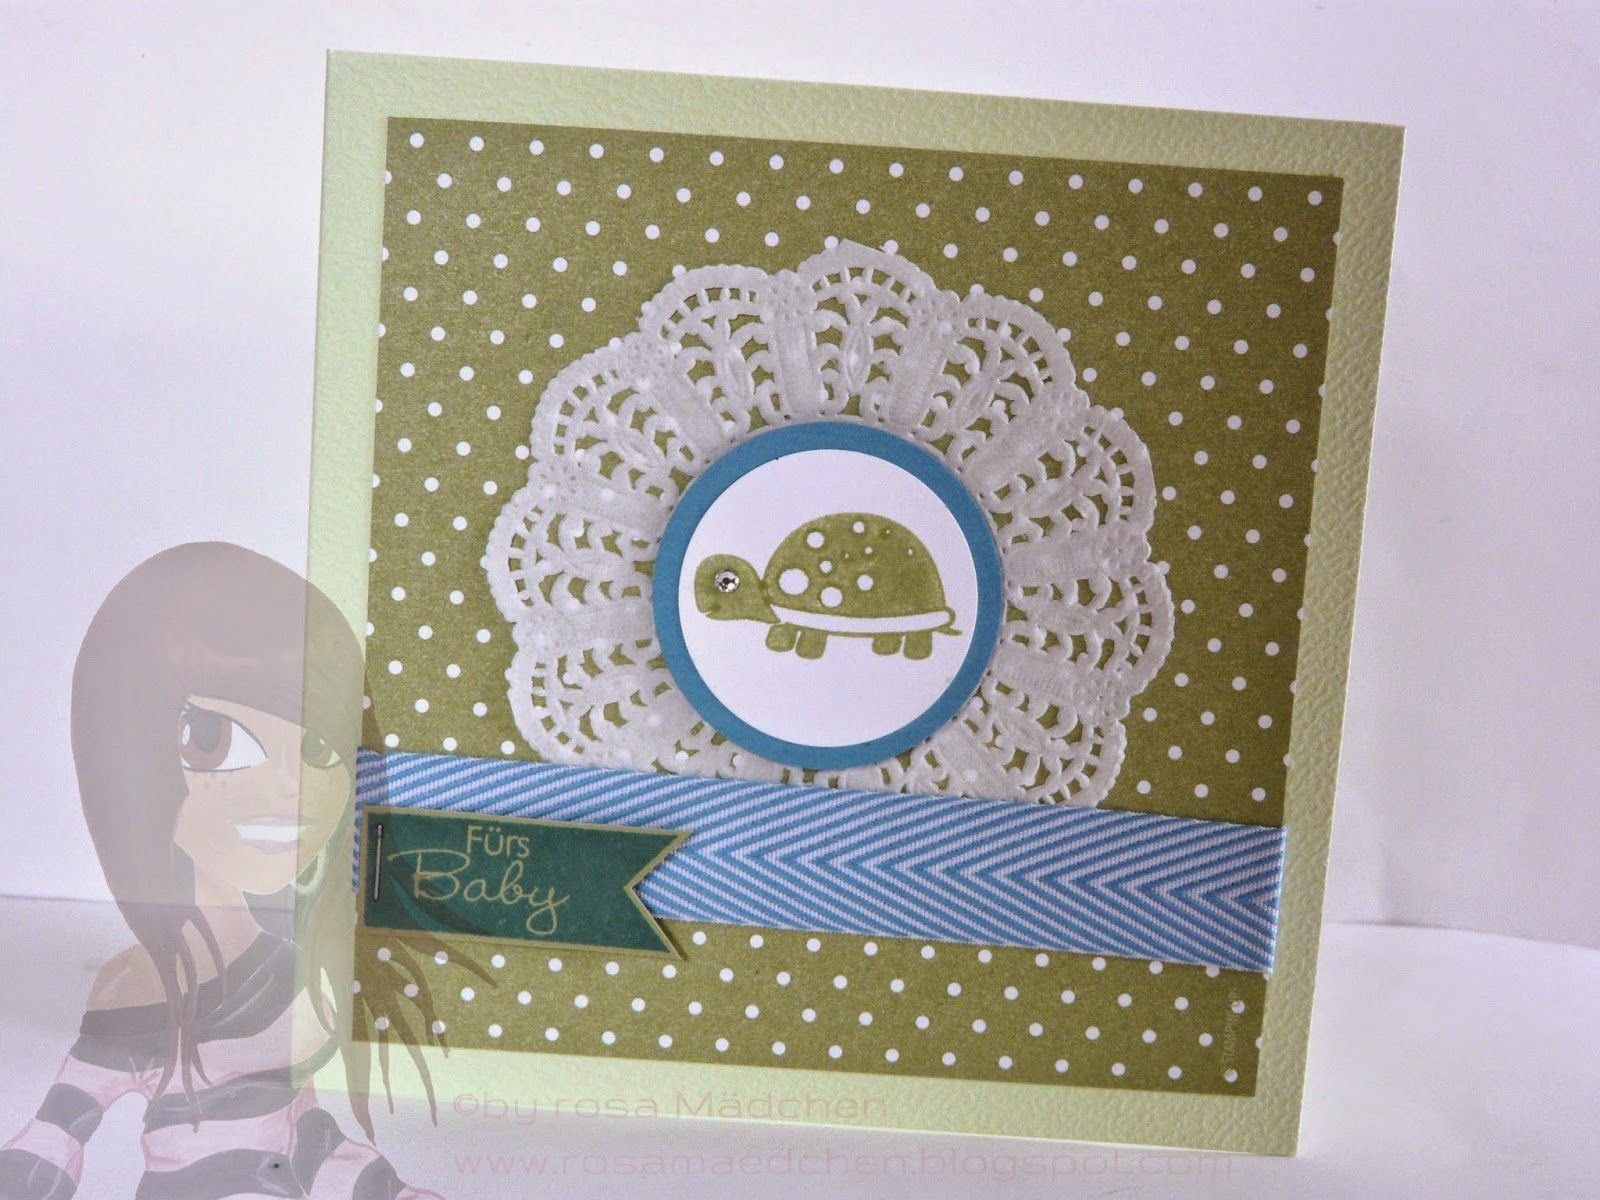 Stampin' Up! - Babykarte - Fox & Friends - Fahnengruß - rosamaedchen.blogspot.de